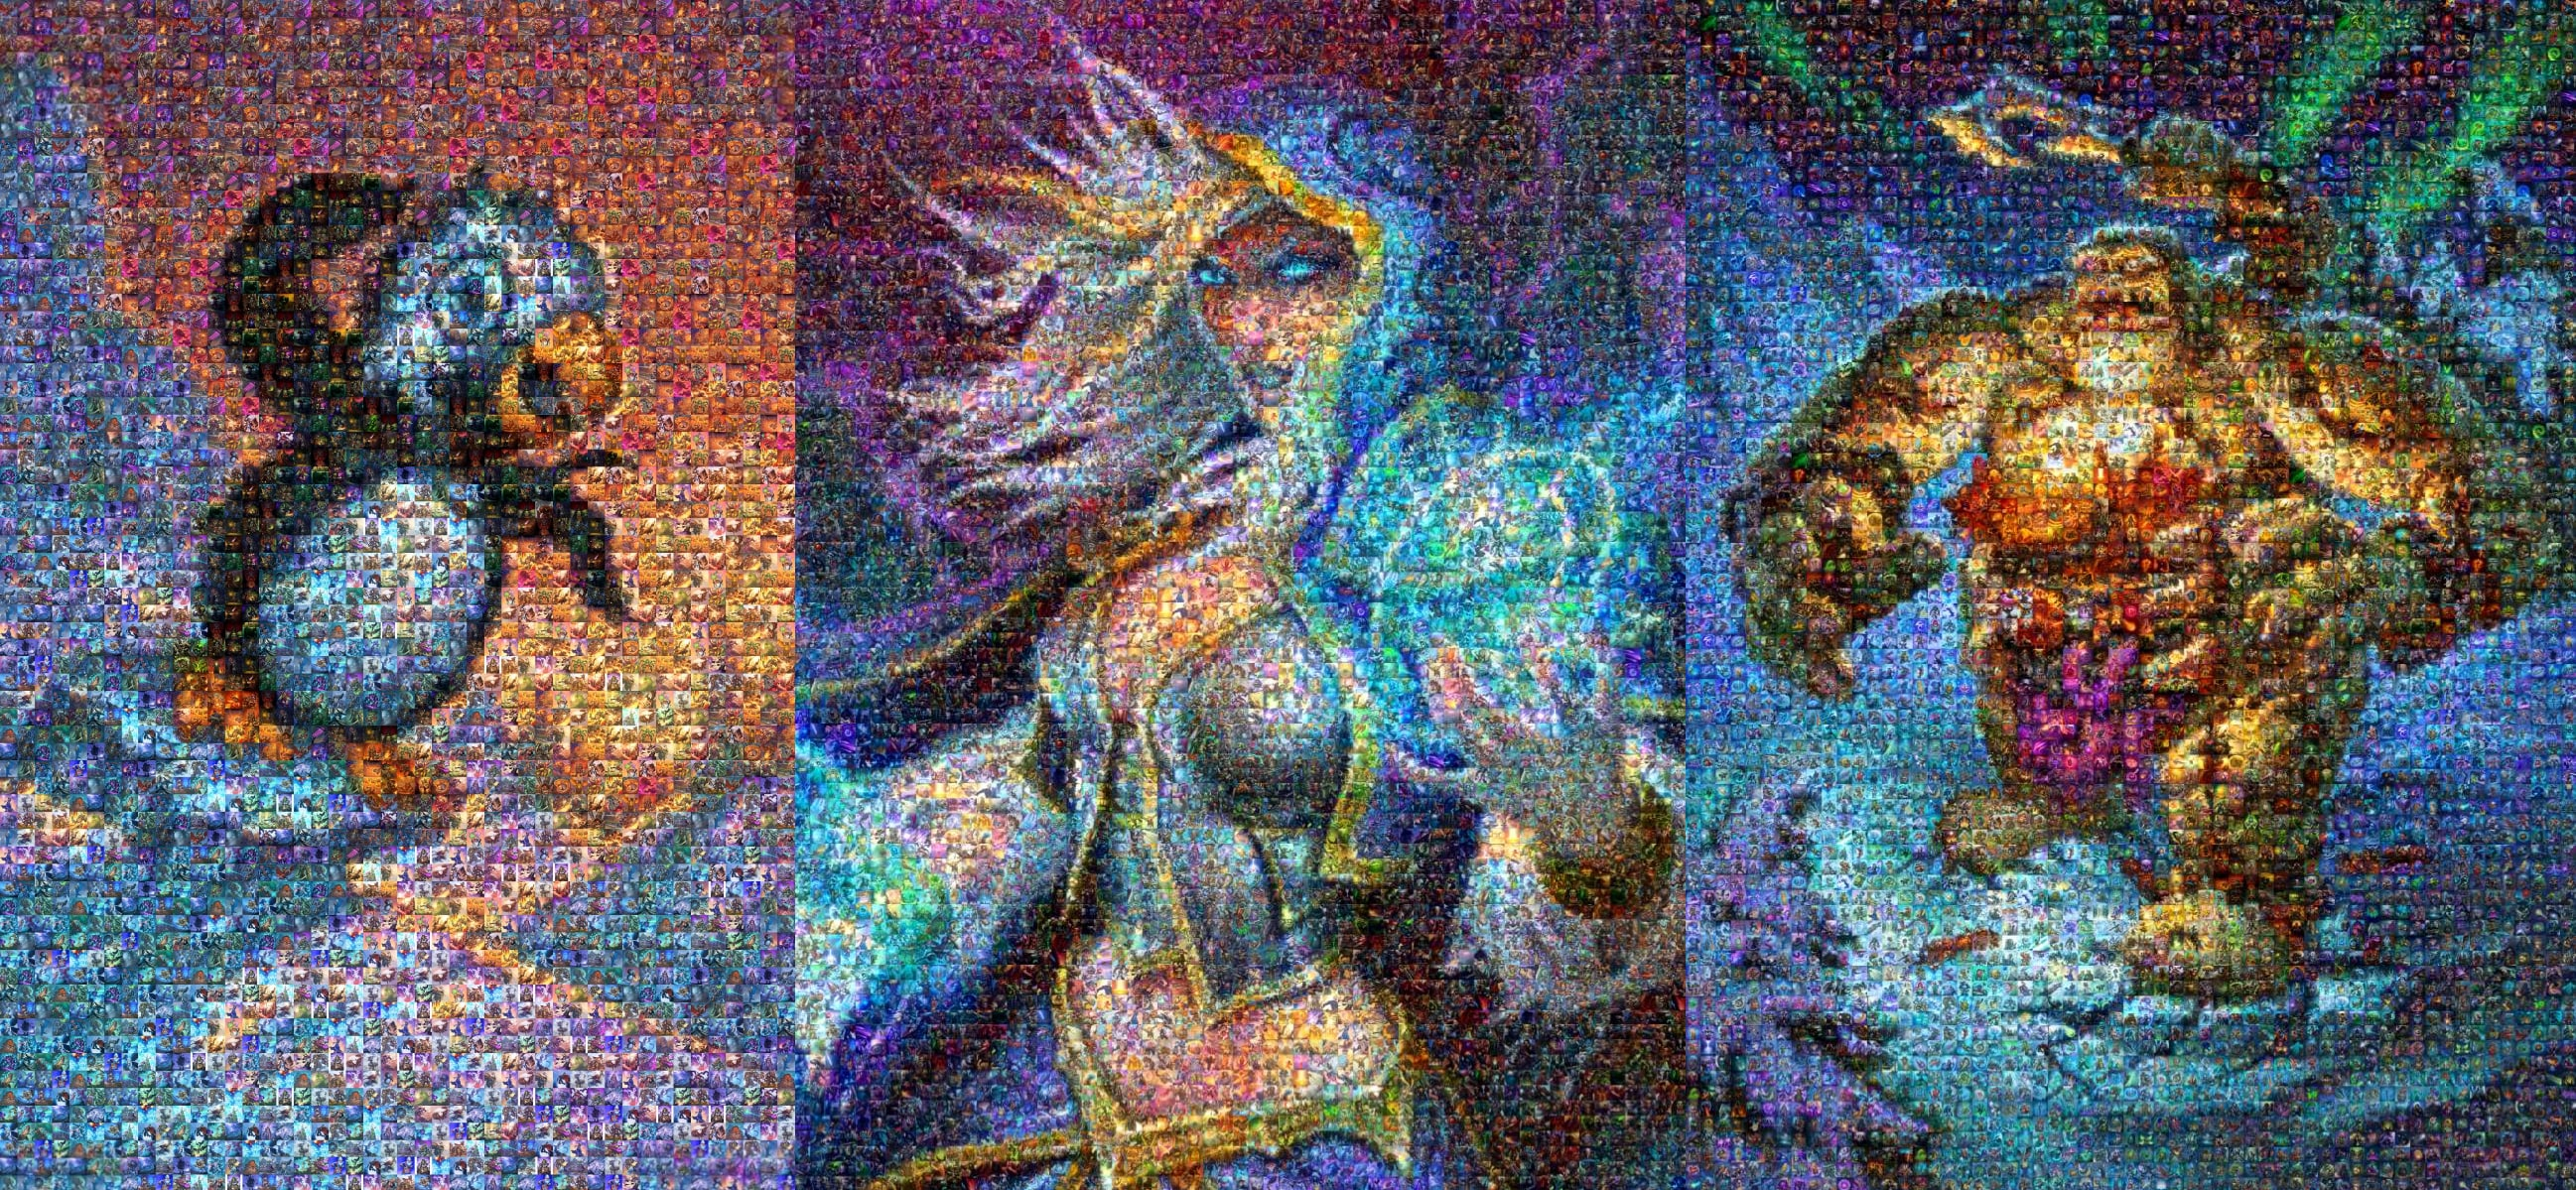 Hearthstone photo mosaic